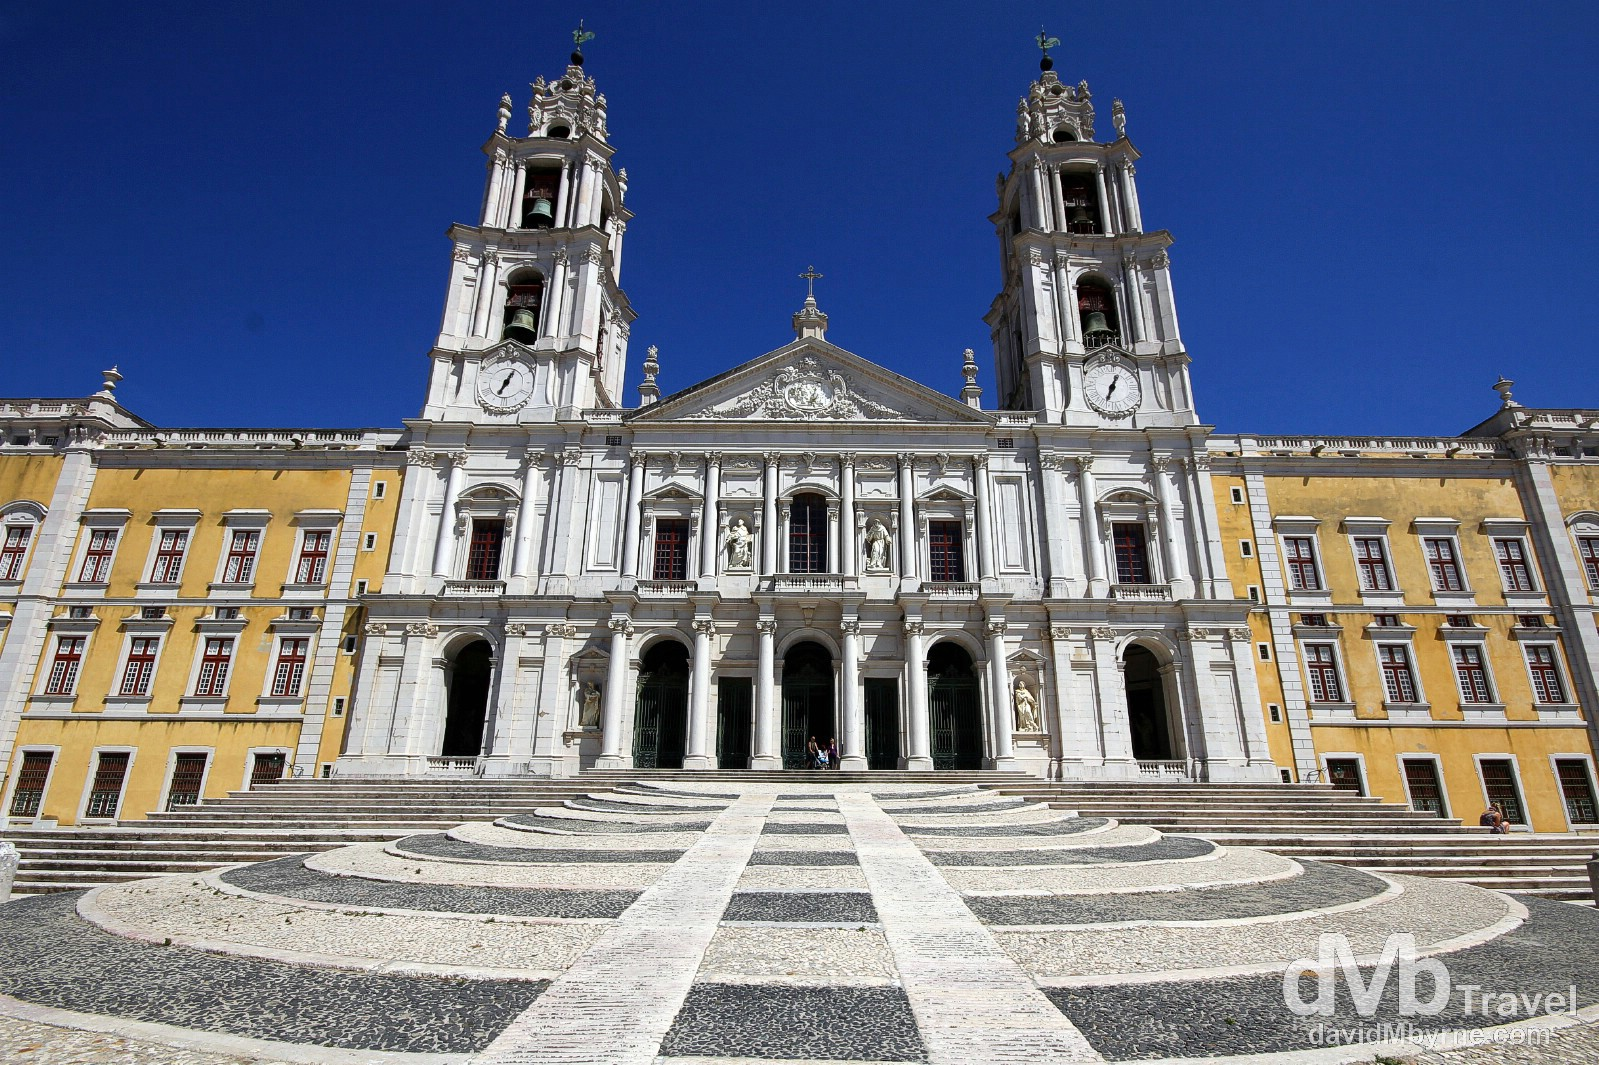 Mafra National Palace, Mafra, Portugal